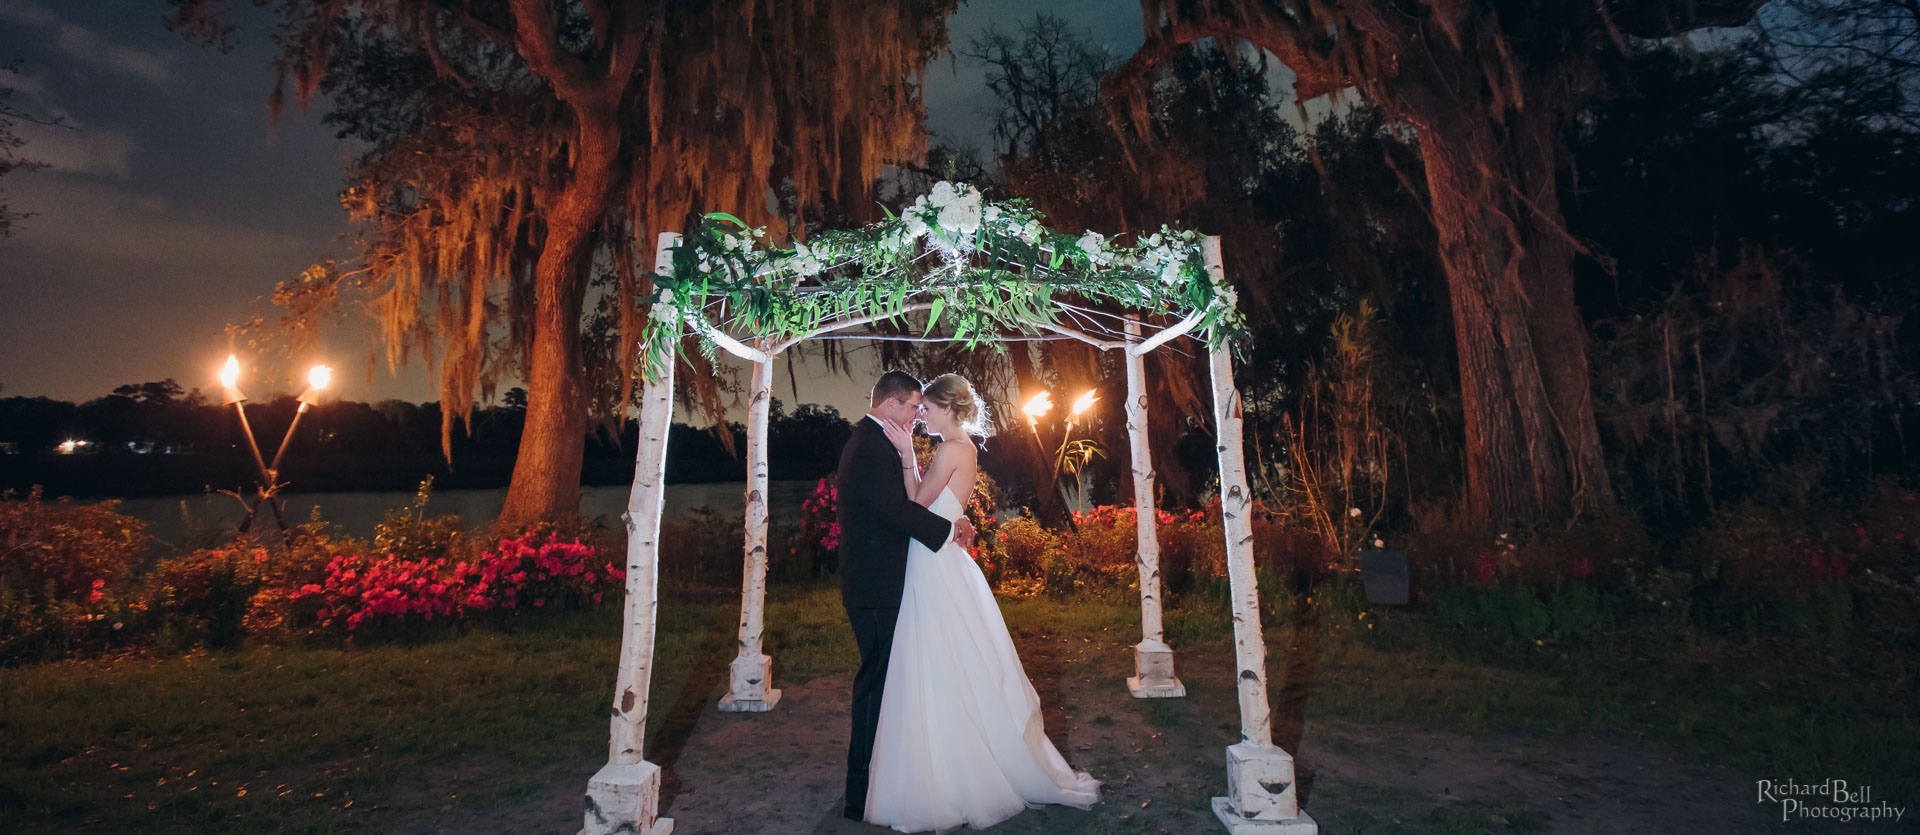 Bride and Groom Chuppah